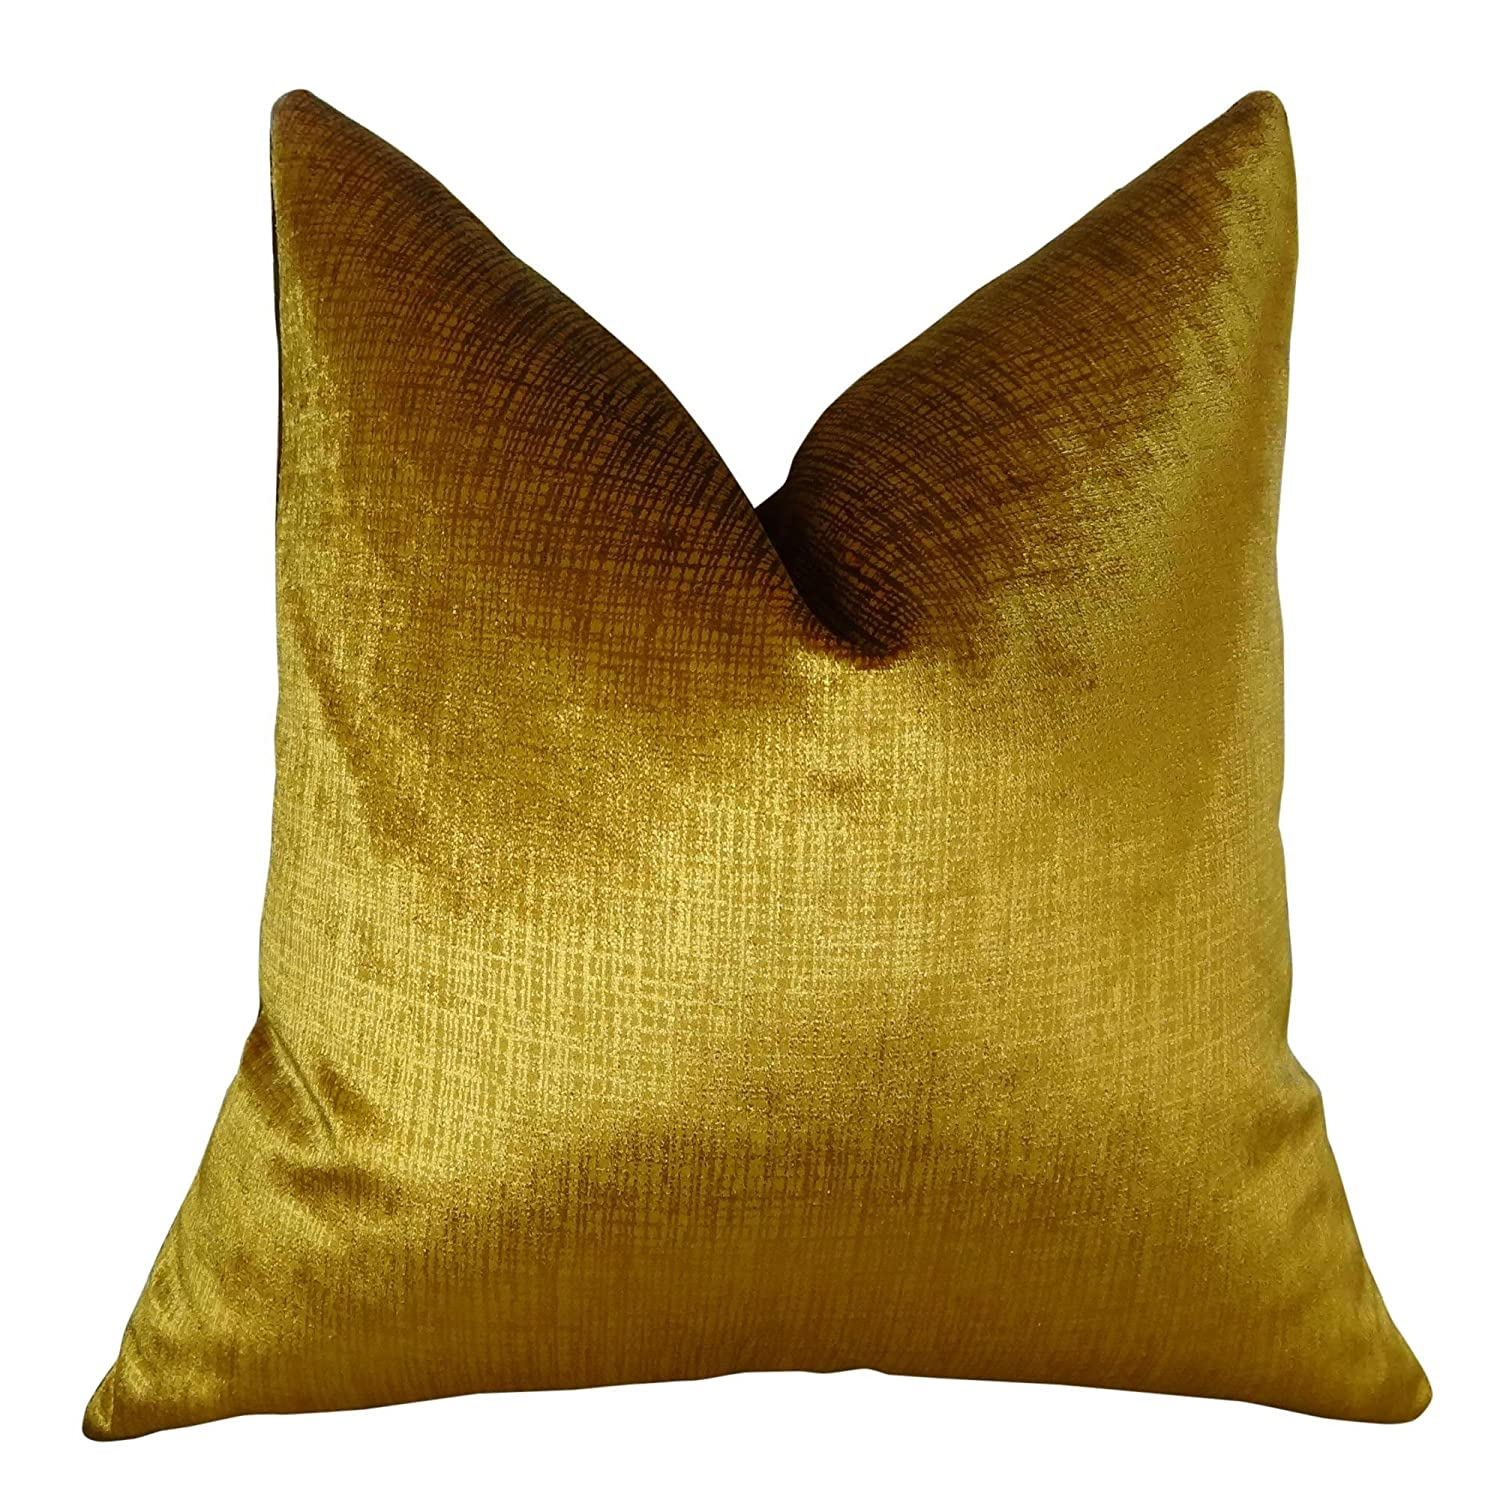 (nAcA A|.Double sided 41cm x 41cm) - Gold Throw Pillow - Luxury Designer Decorative Gold Throw Pillow - Metallic Gold Pillow - Modern Gold Accent Pillow - 11249 N....Double Sided 16\  B00S2983CS